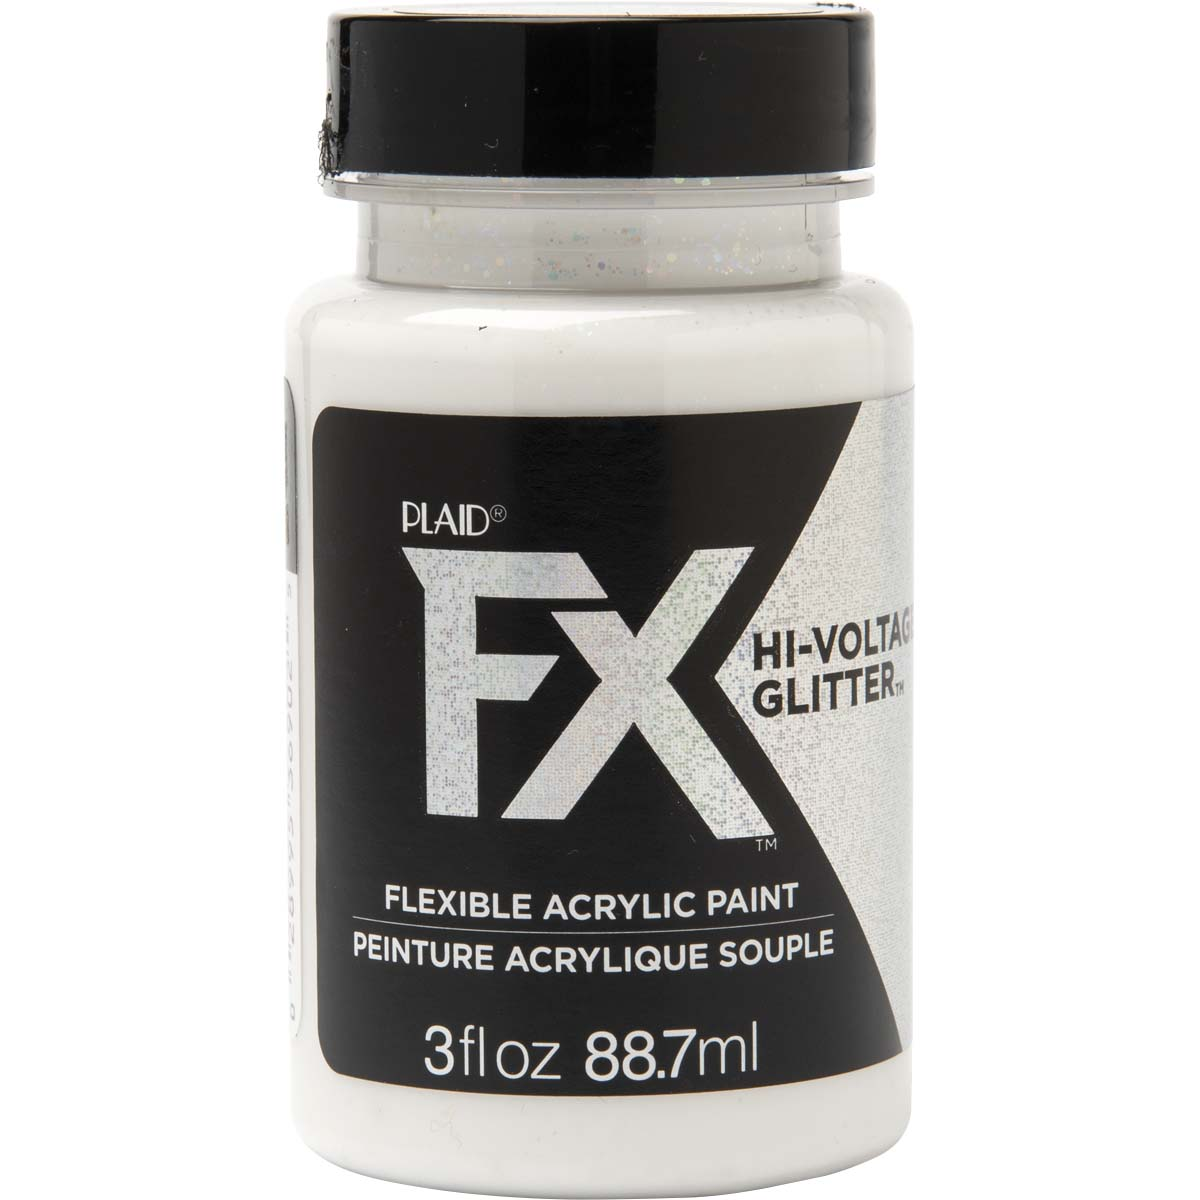 PlaidFX Hi-Voltage Glitter Flexible Acrylic Paint - Iridescent, 3 oz. - 36902